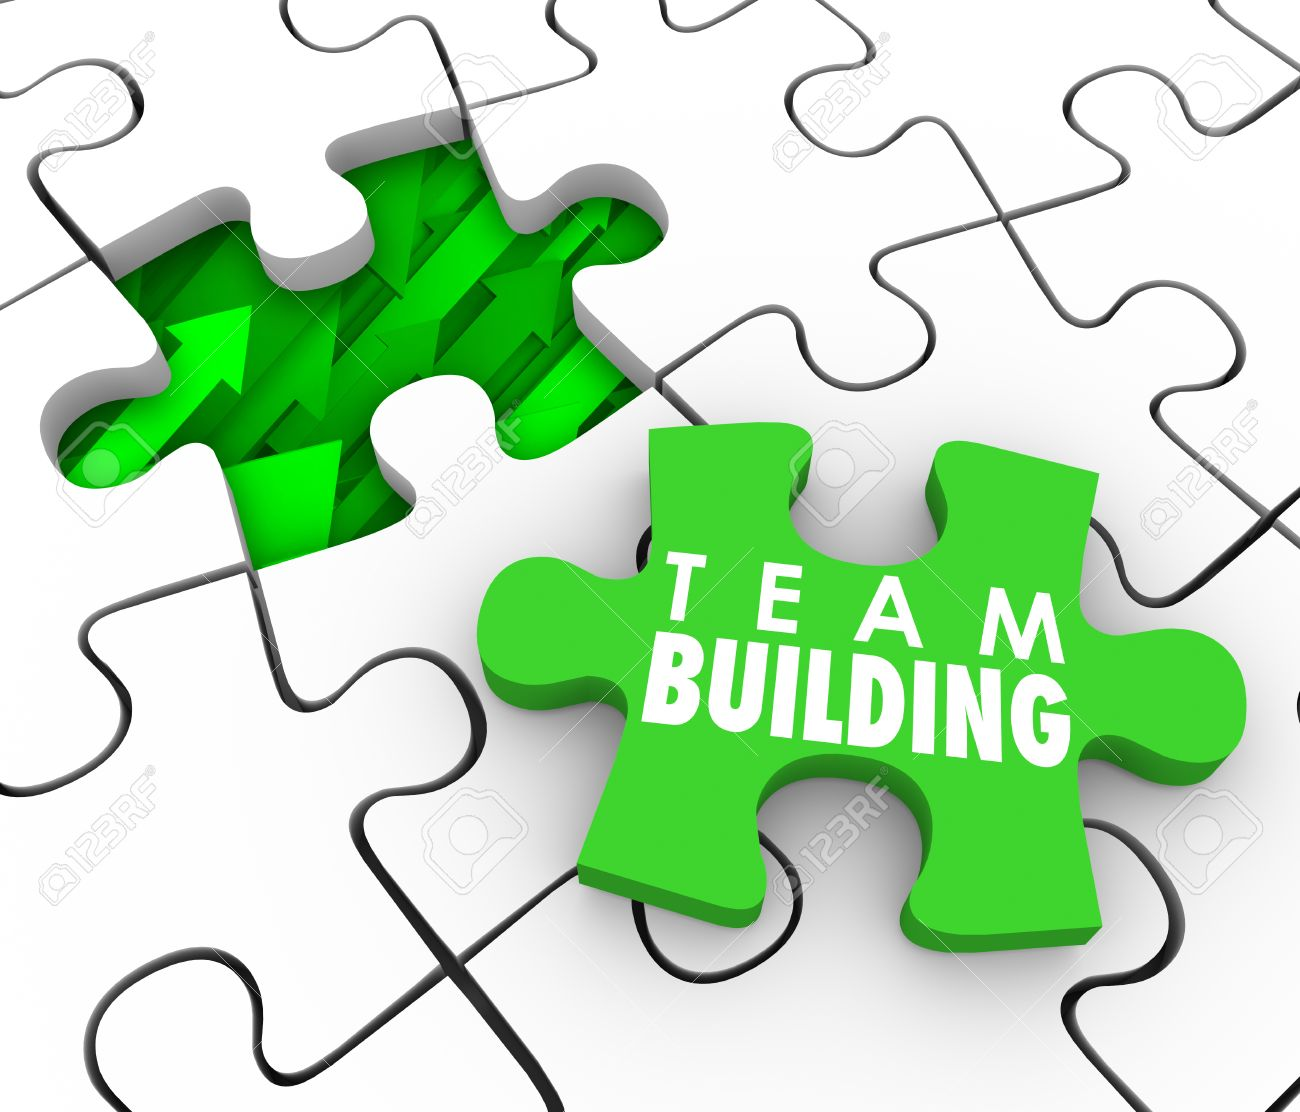 Team Building Words On A Puzzle Piece To Fill A Hole , Business ...